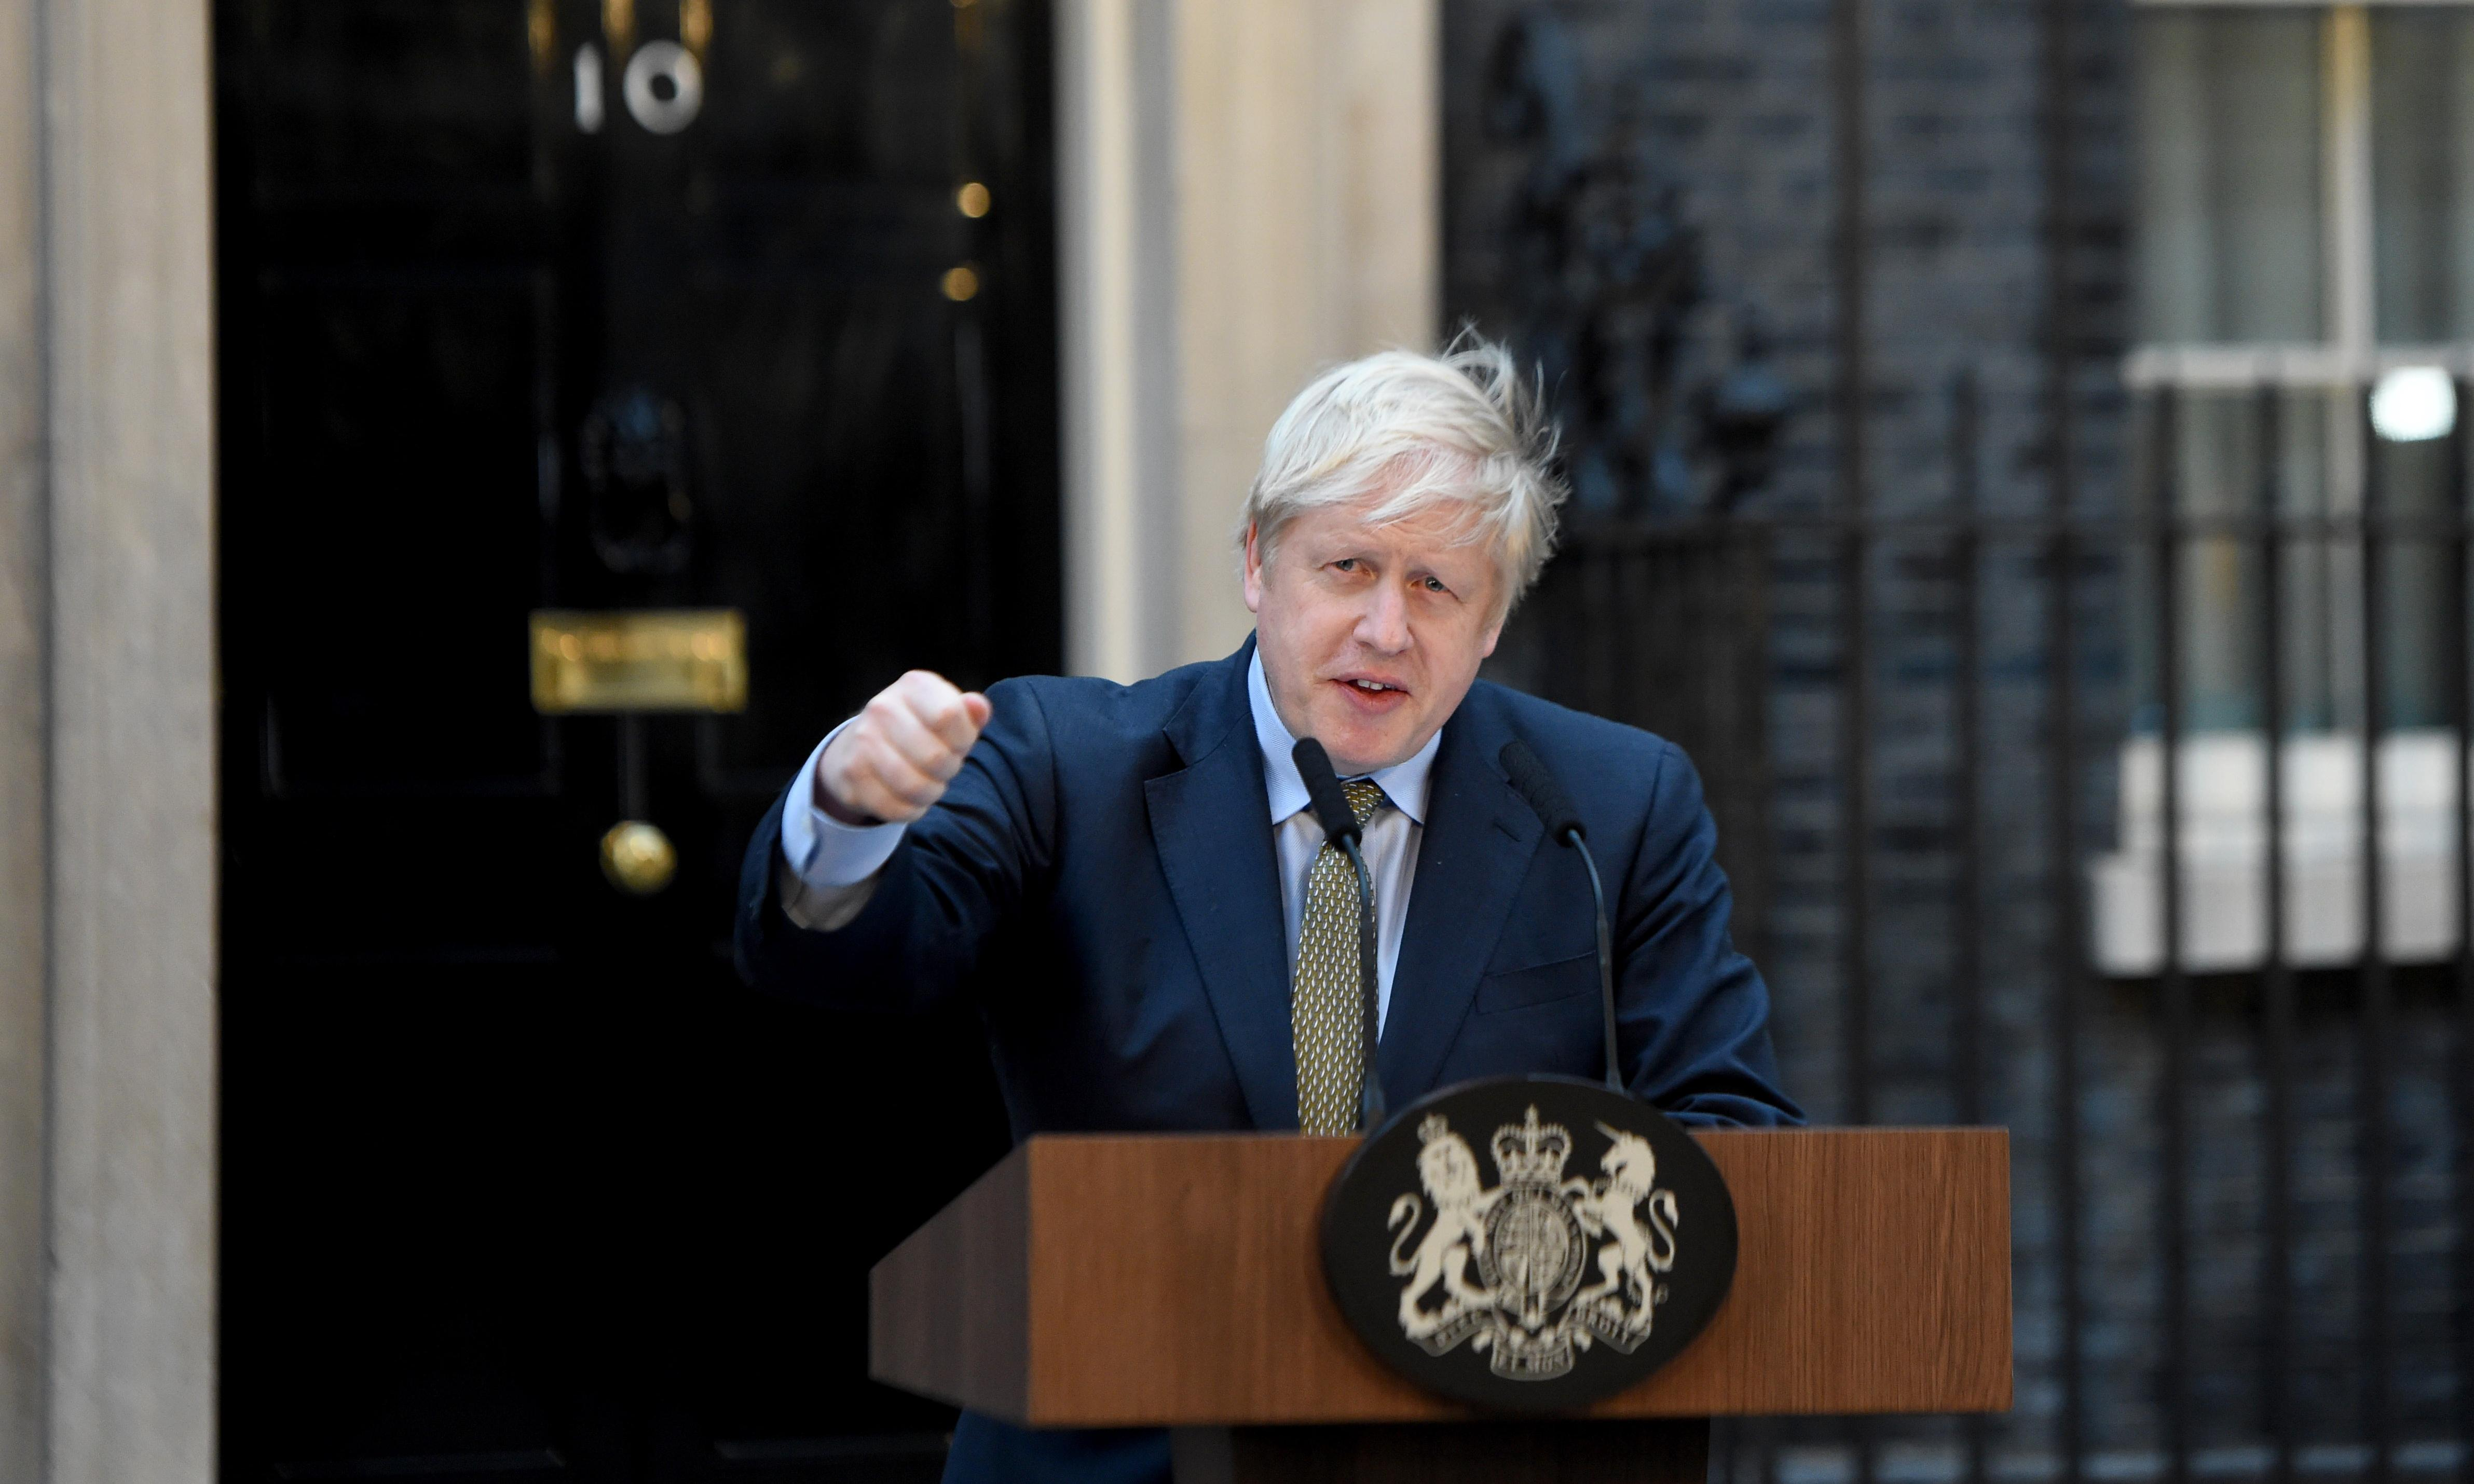 If Boris Johnson is to heal Britain, telling the truth would be a good start